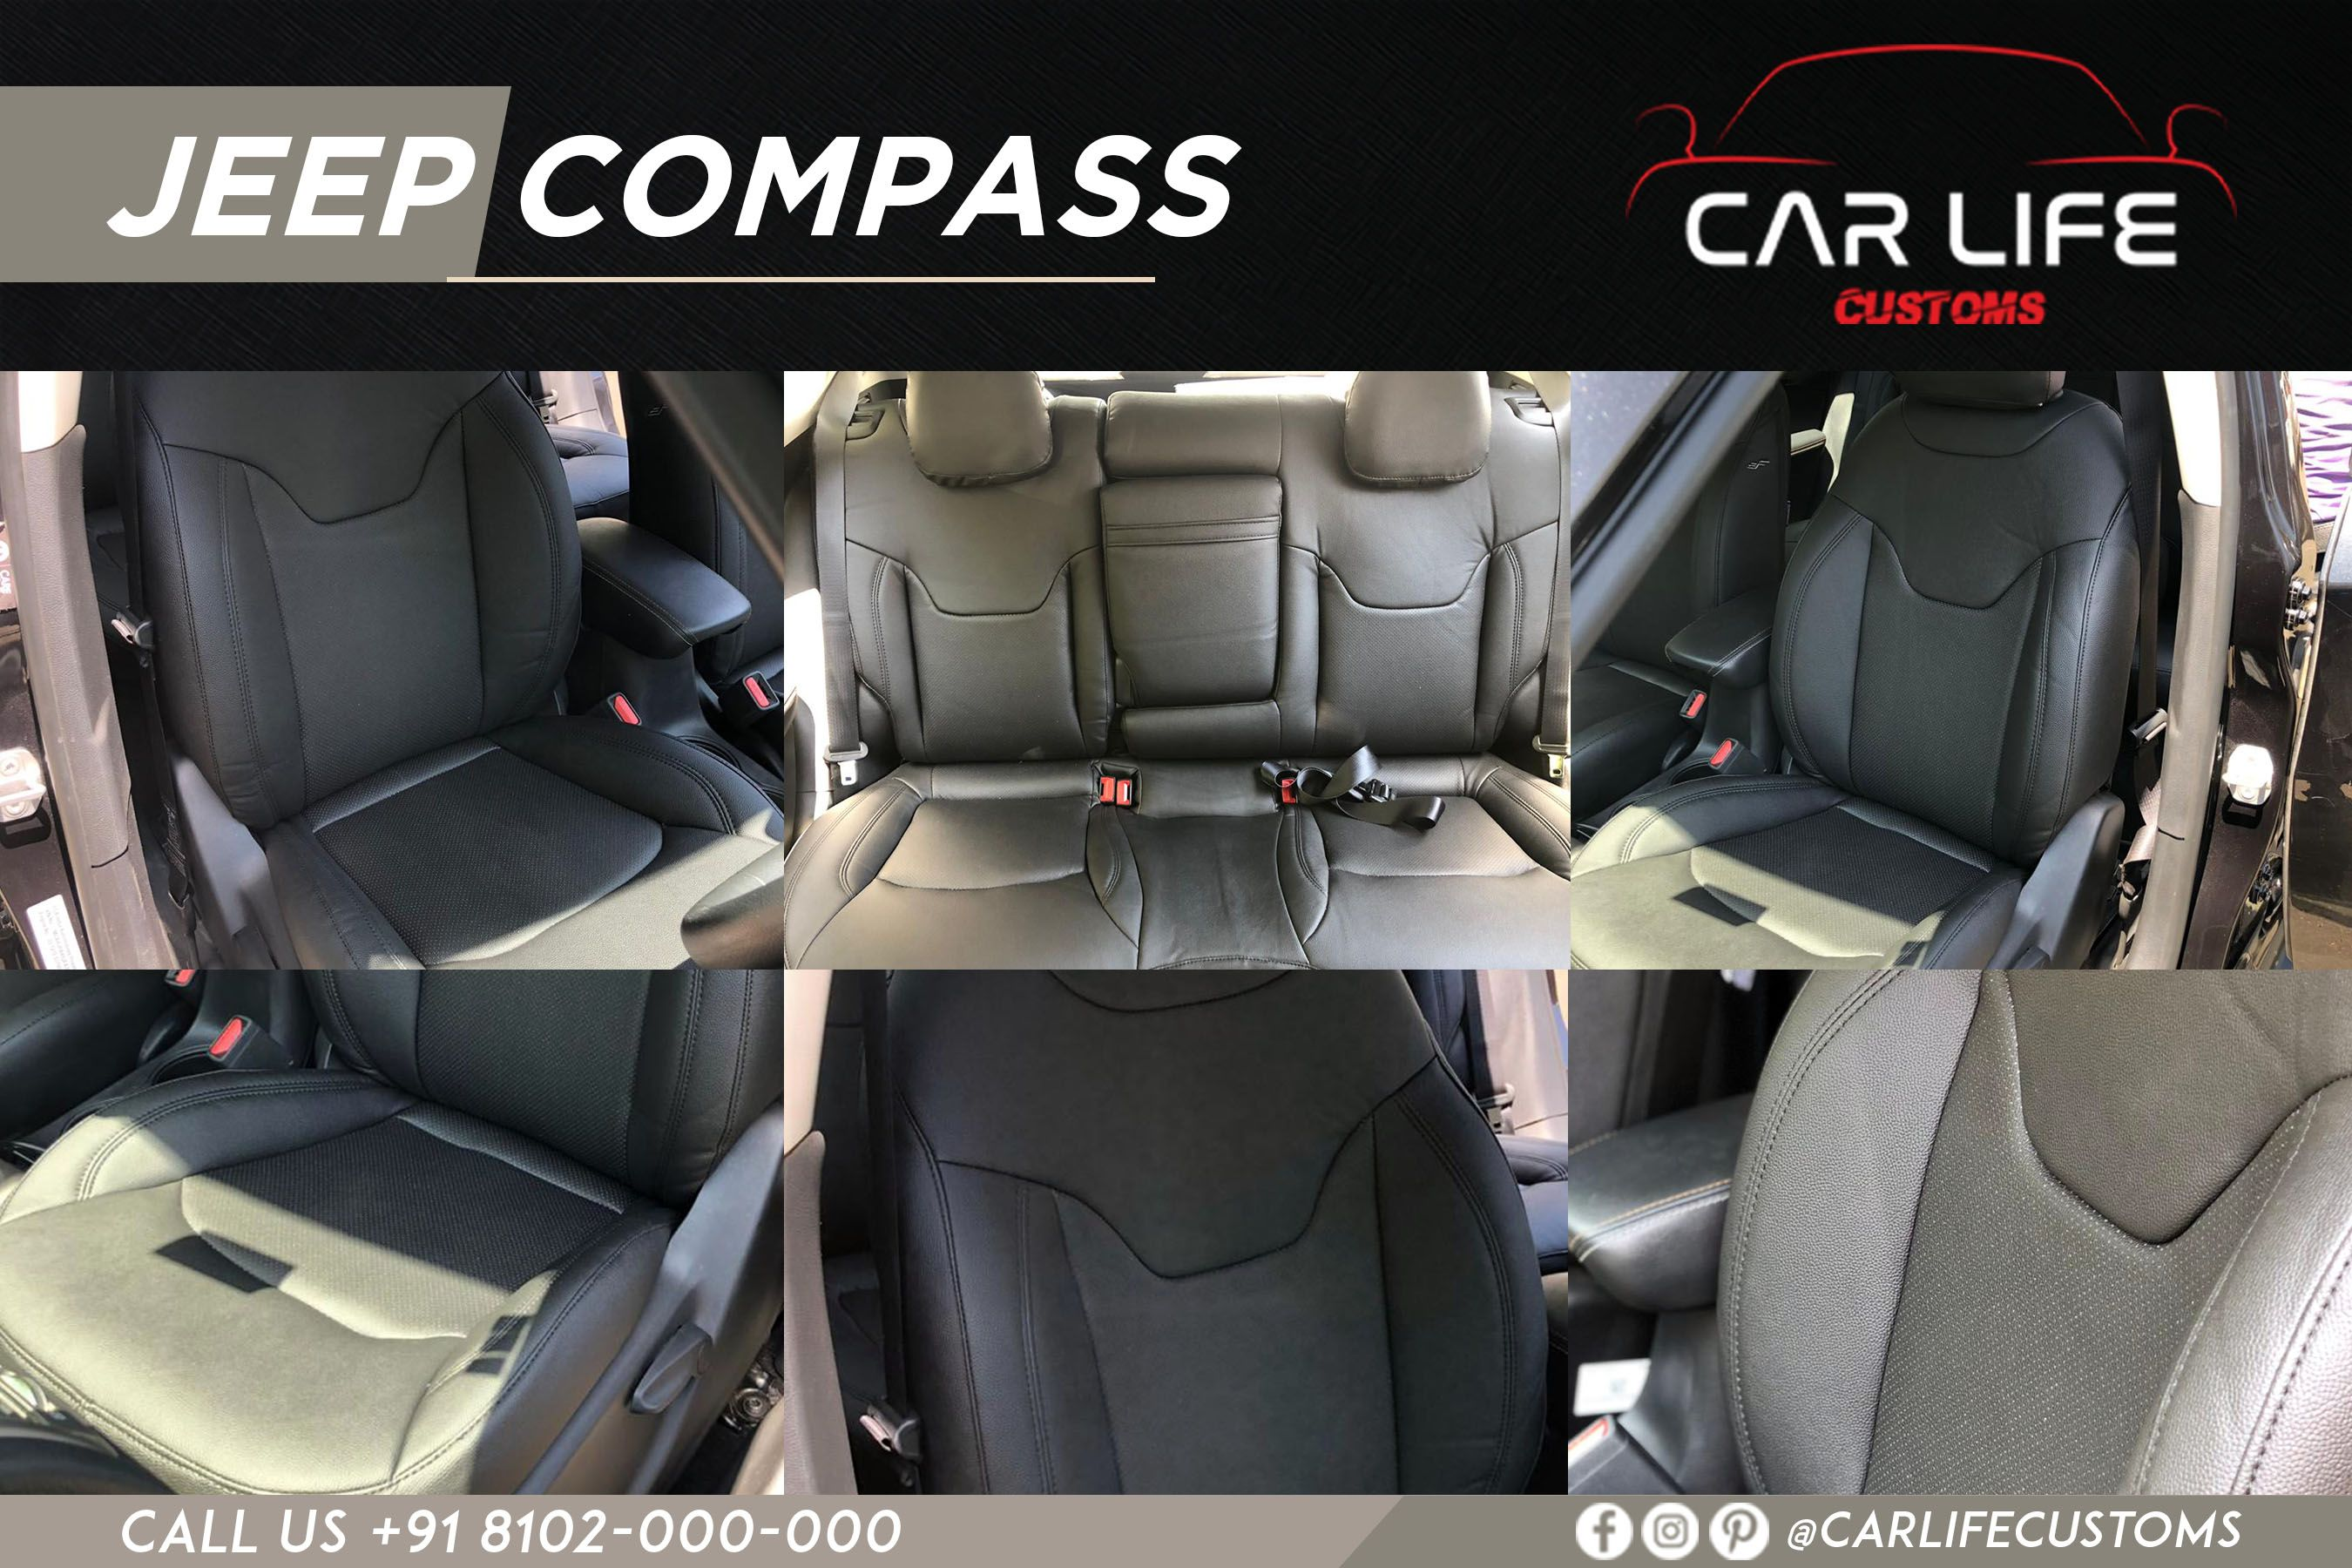 Jeep Compass Hovered In Perforated Seat Covers From Autoformindia In All Black Riviera Series Skin Fit Seat Covers And Prev Jeep Compass Car Compass Jeep